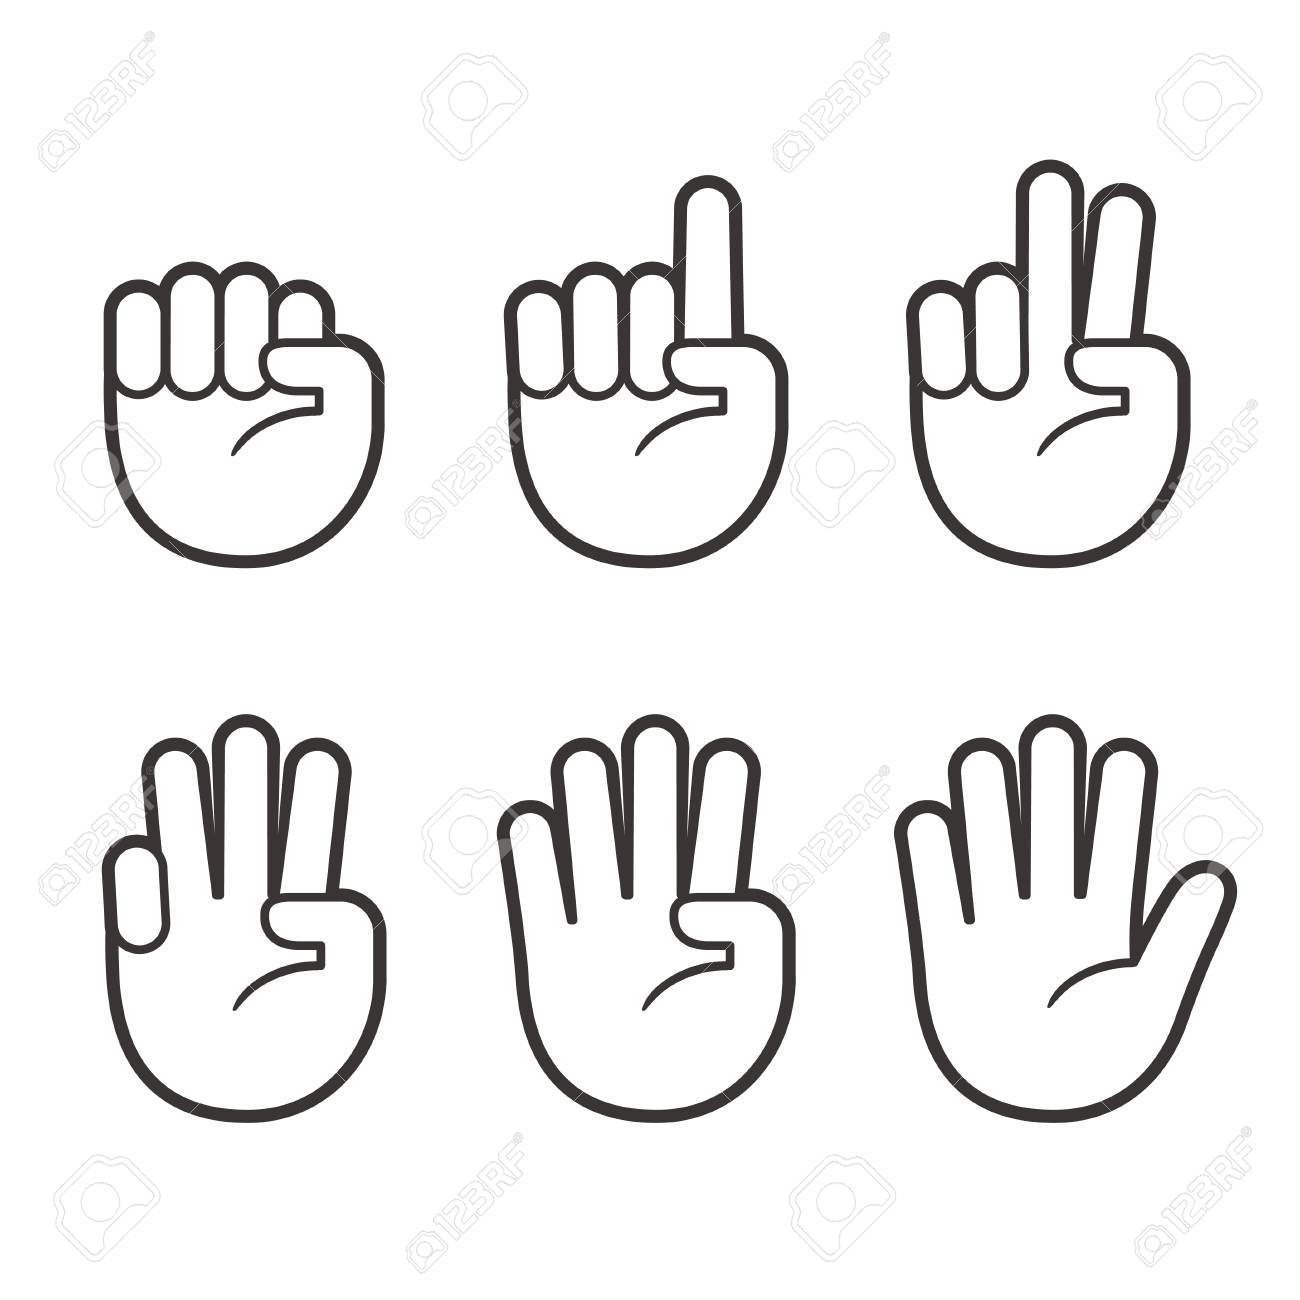 Hand icons with finger count. Hand gesture symbols, counting...